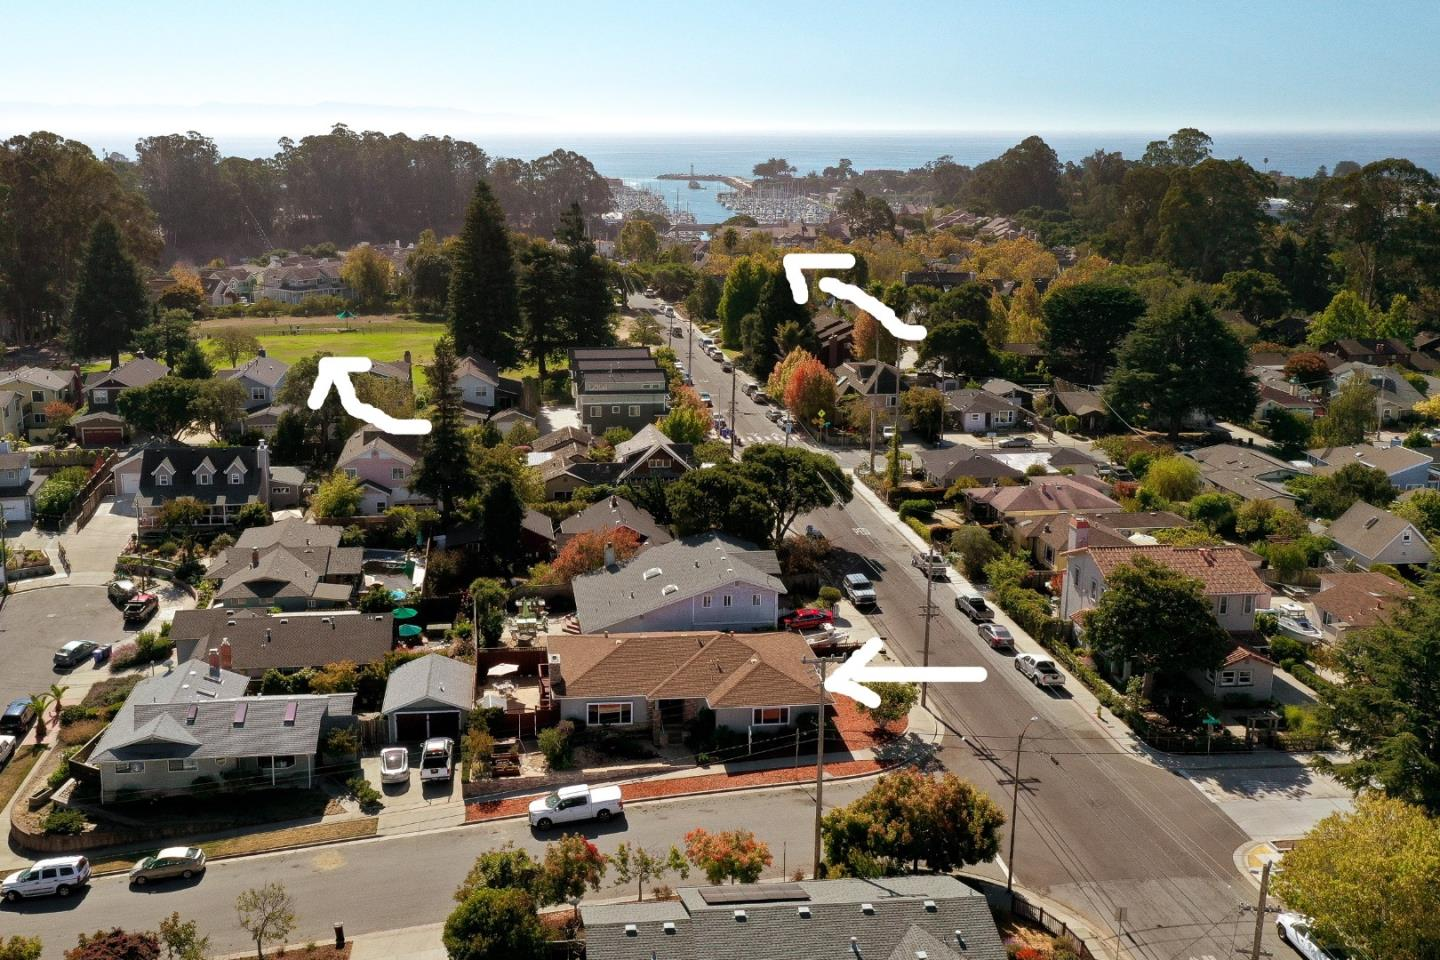 Enjoy a relaxed rhythm of life  in the heart of Eastside's most desirable neighborhoods! A short walk on close by trails or a quick bike ride to the yacht harbor, Arana Gulch greenbelt and to the cool midtown restaurants and shops-just a quick stroll to Frederick St. Park and dog park.  Location is away from typical beach traffic but close to everything including freeway and shopping. This home has more of a mid- century flair and style. Spacious, single level boasts lots of natural light, bamboo floors and fresh paint with a welcoming and bright living room. Other features include dual pane windows , stainless steel appliances with a brand new dishwasher and a cozy fireplace, updated copper plumbing. Corner lot with low maintenance yard, lovely calming ponds greet you at the door, backyard flagstone patio with pretty views from the back deck. Easy beach living in this Eastside, Seabright and Harbor location! It's all about location!